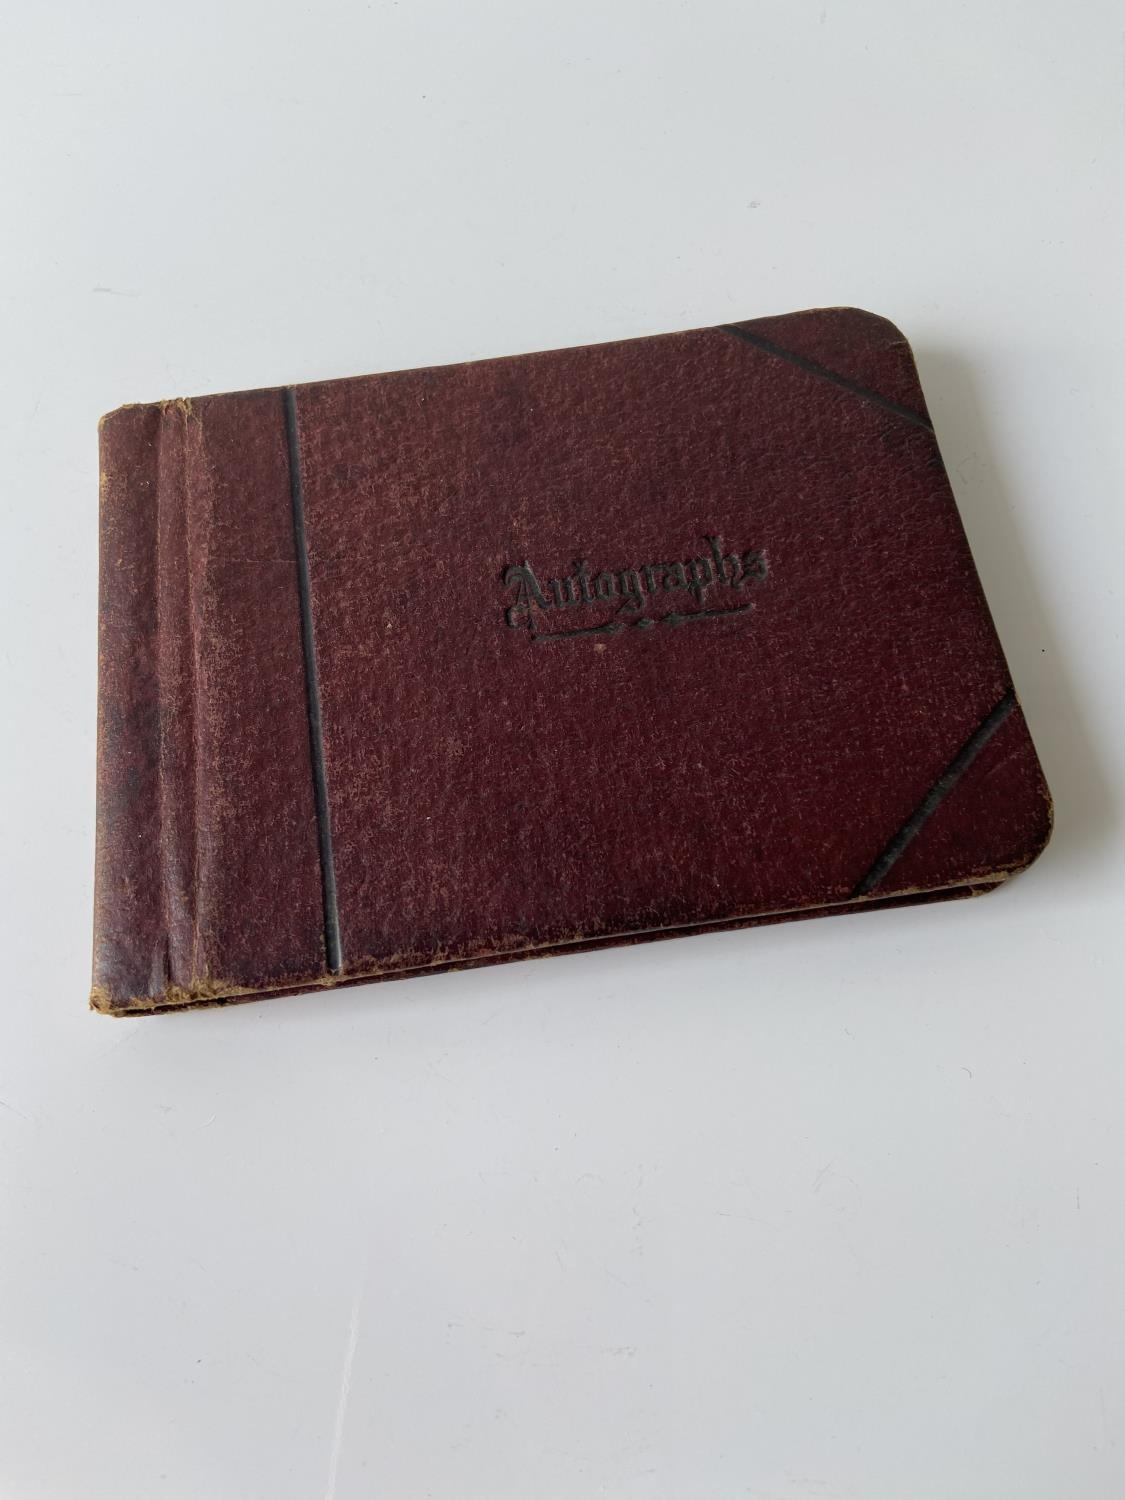 An old autograph album containing various poems, sayings & doodles - Image 2 of 18